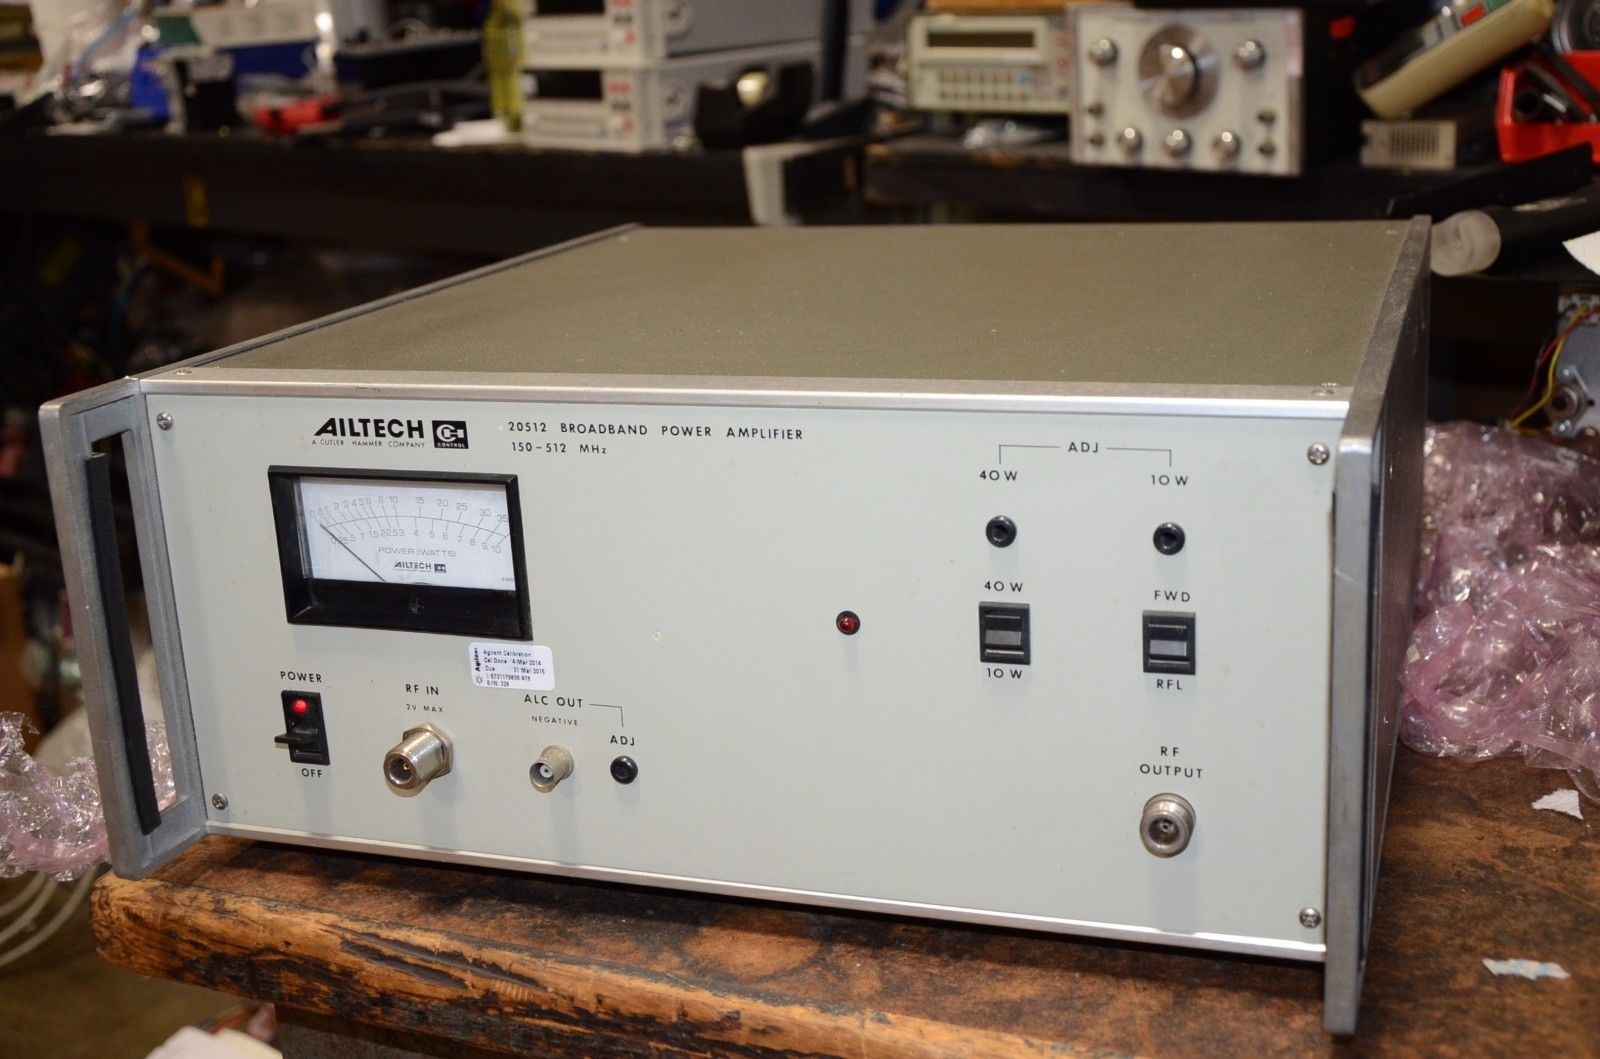 ailtech-cutler-512-mhz-10-40-watt-rf-broadband-power-amplifier-0.jpg